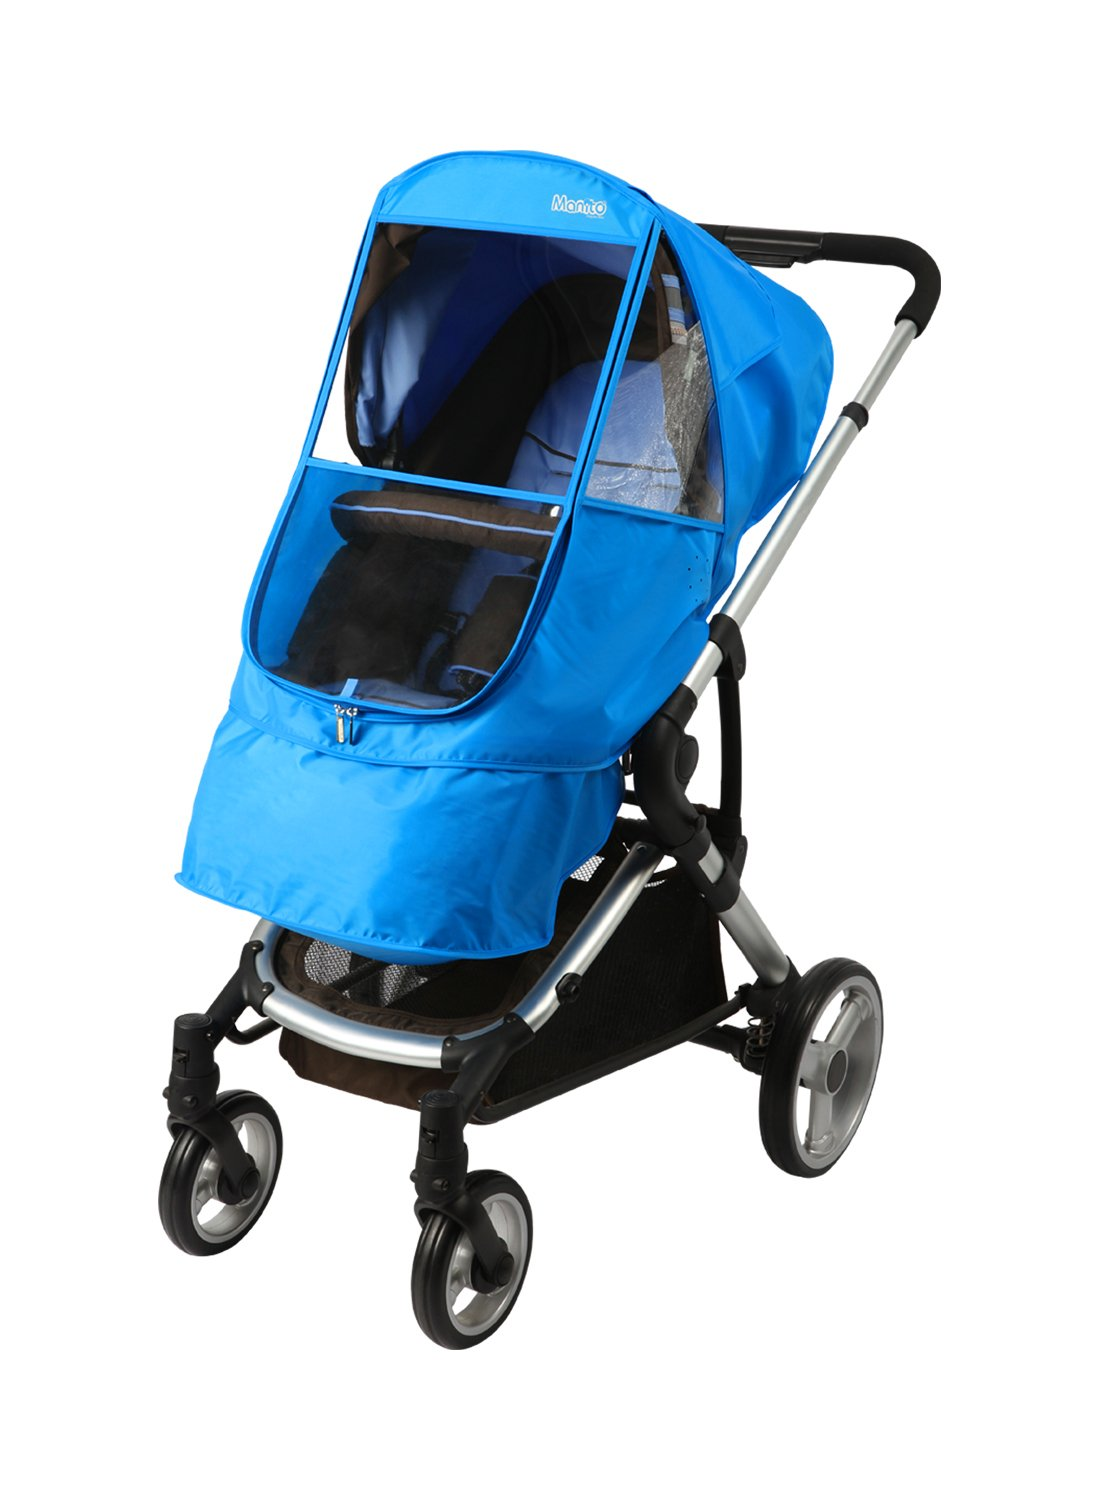 Manito Elegance Beta Stroller Weather Shield / Rain Cover - Blue by Manito